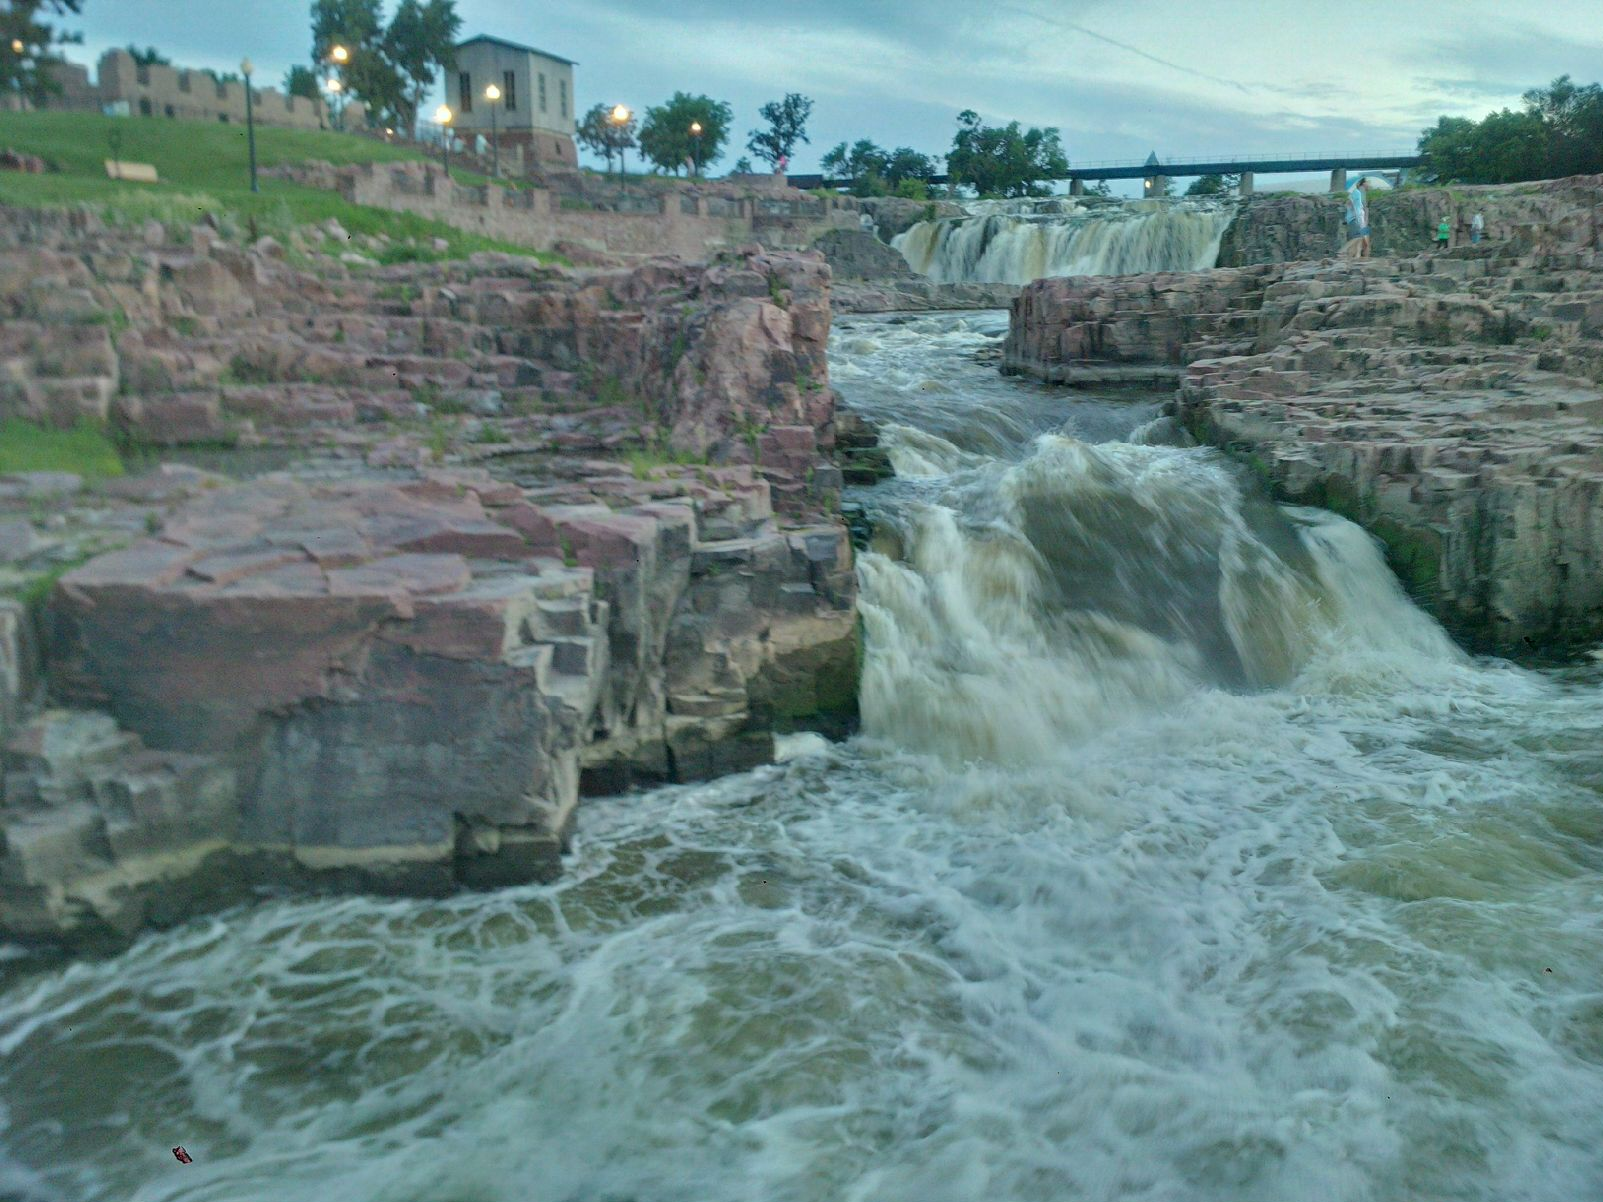 20150721_SiouxFalls_TheWaterfall